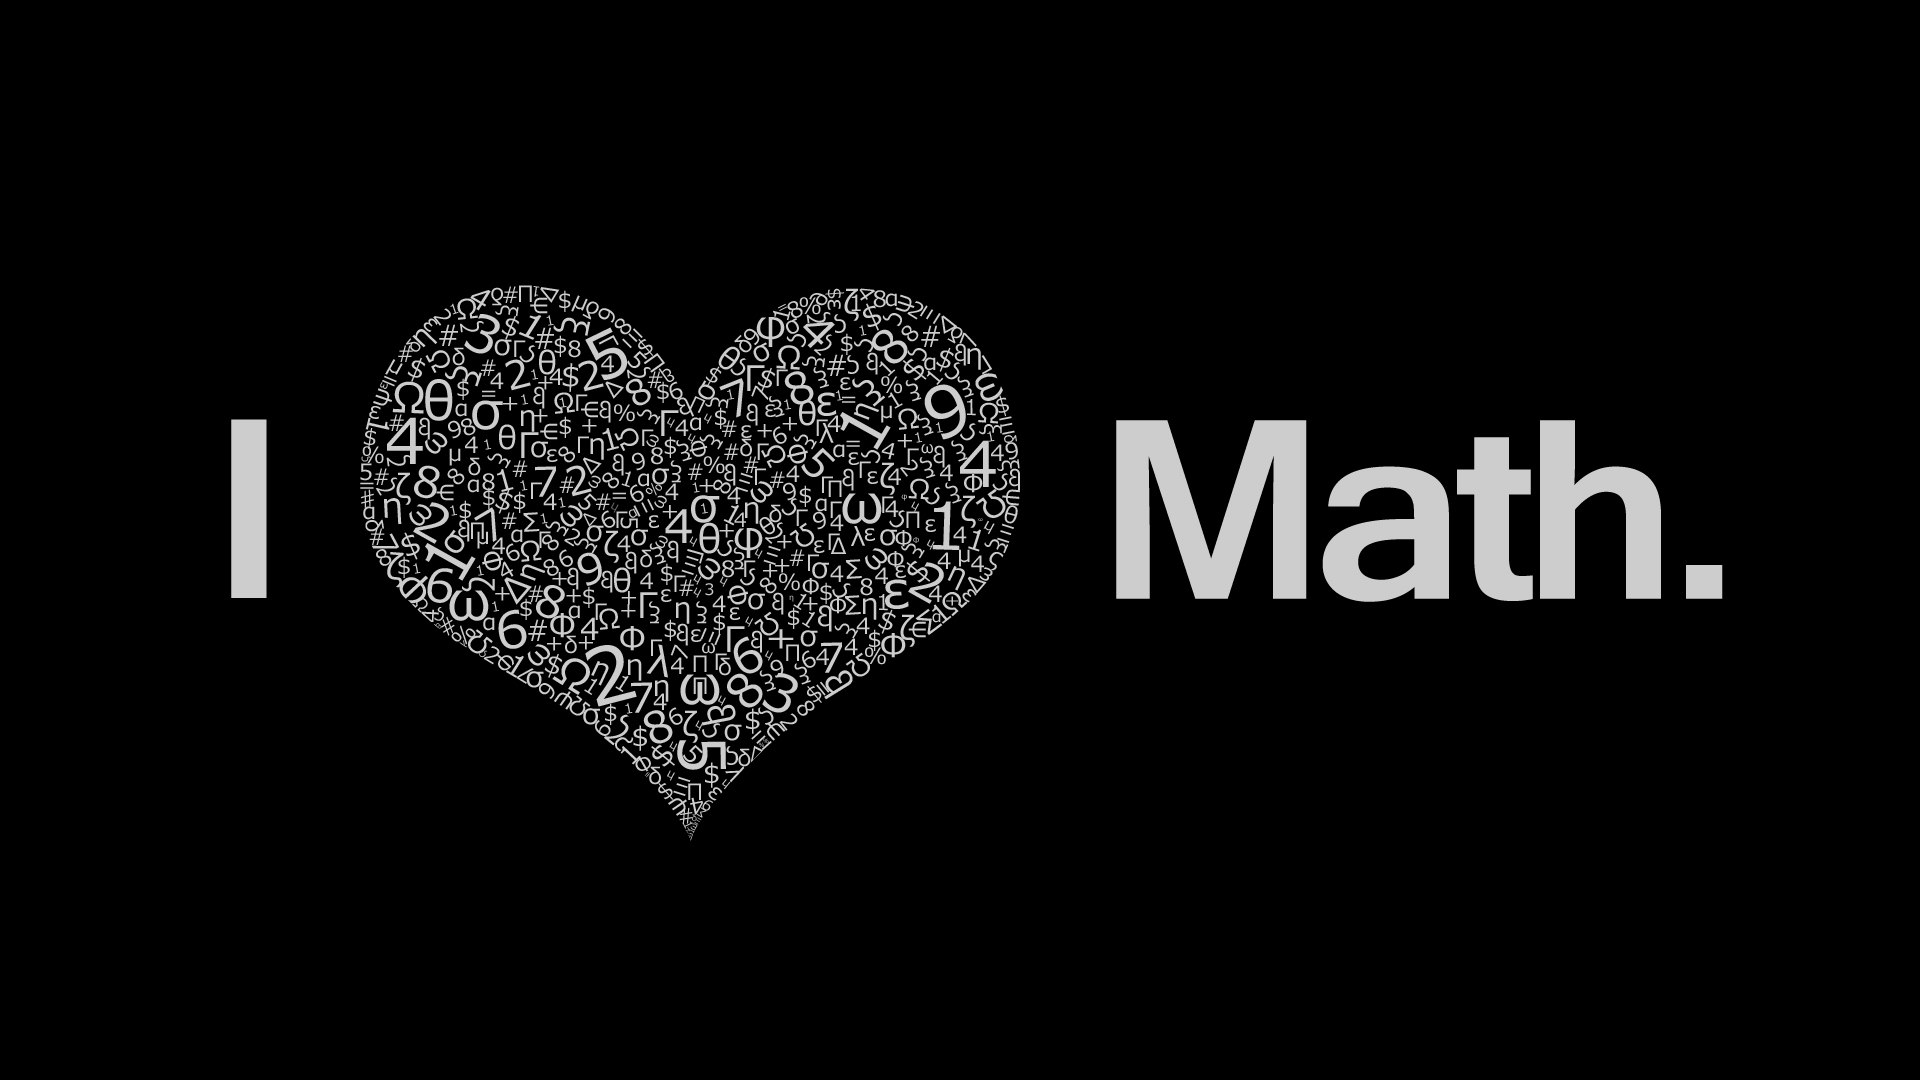 Math wallpaper 1920x1080 #5872